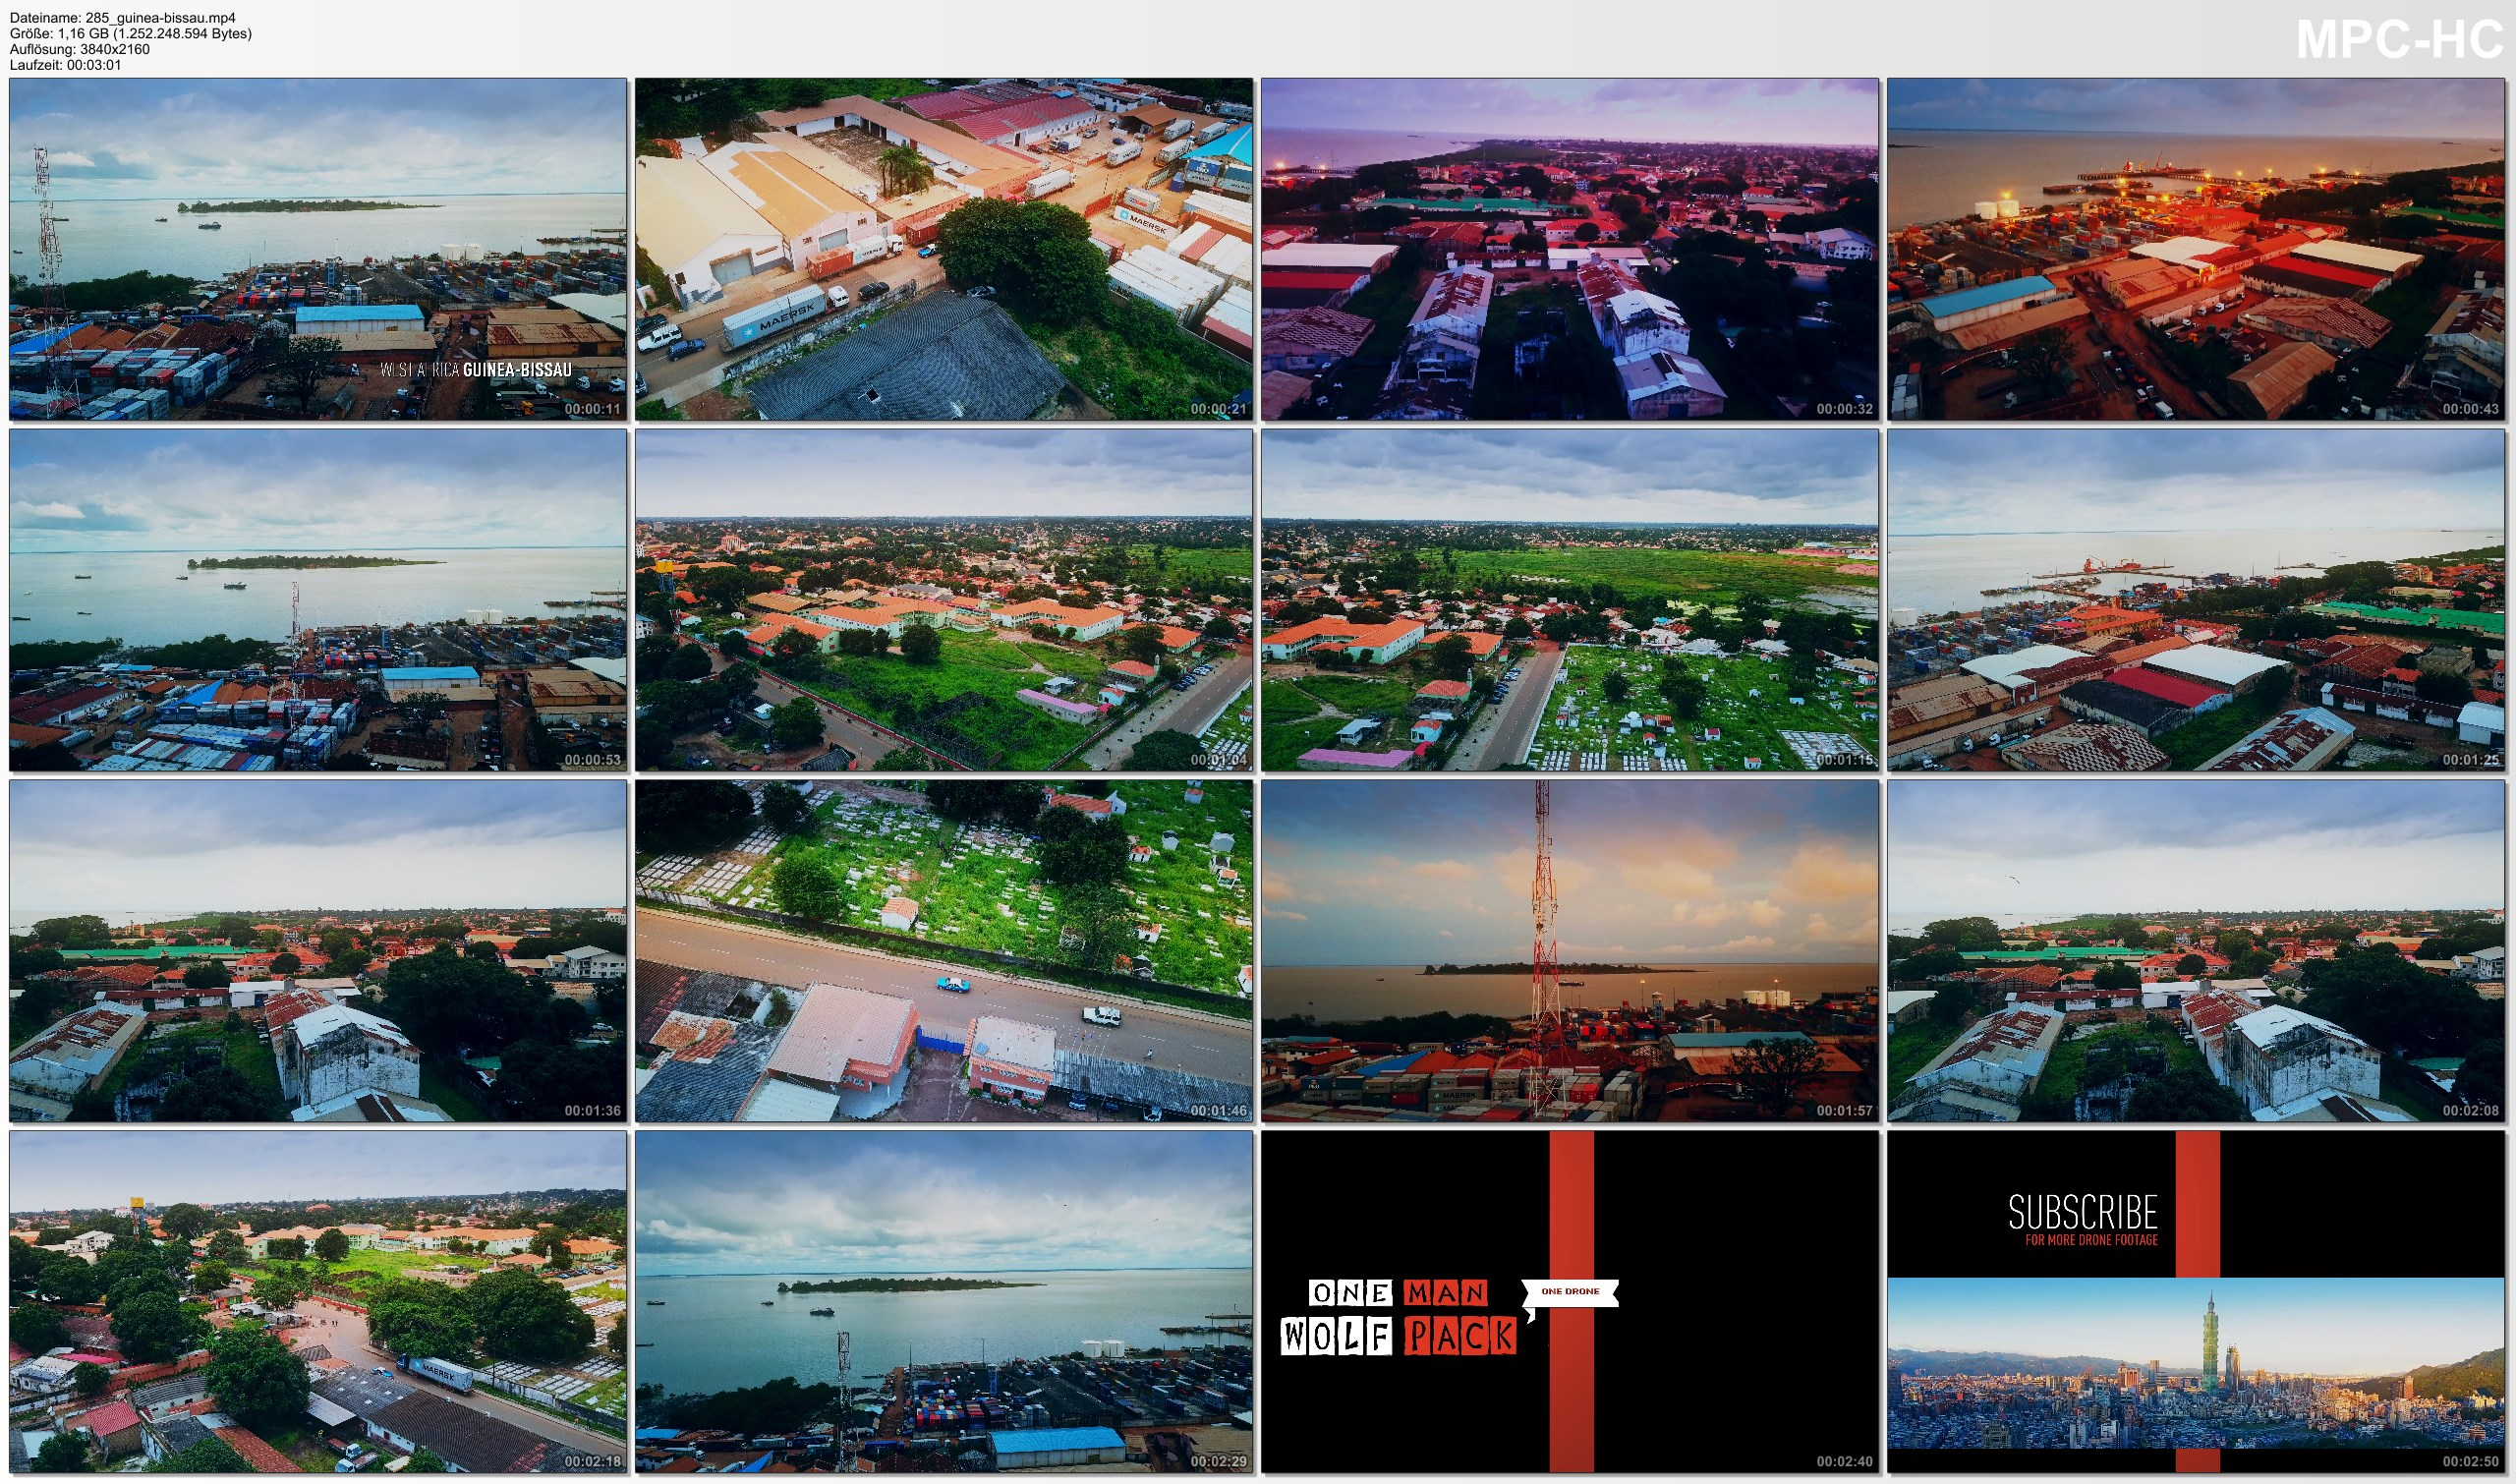 Drone Pictures from Video 【4K】Drone Footage | Visiting West Africa - GUINEA-BISSAU 2019 ..:: Cinematic Aerial Film